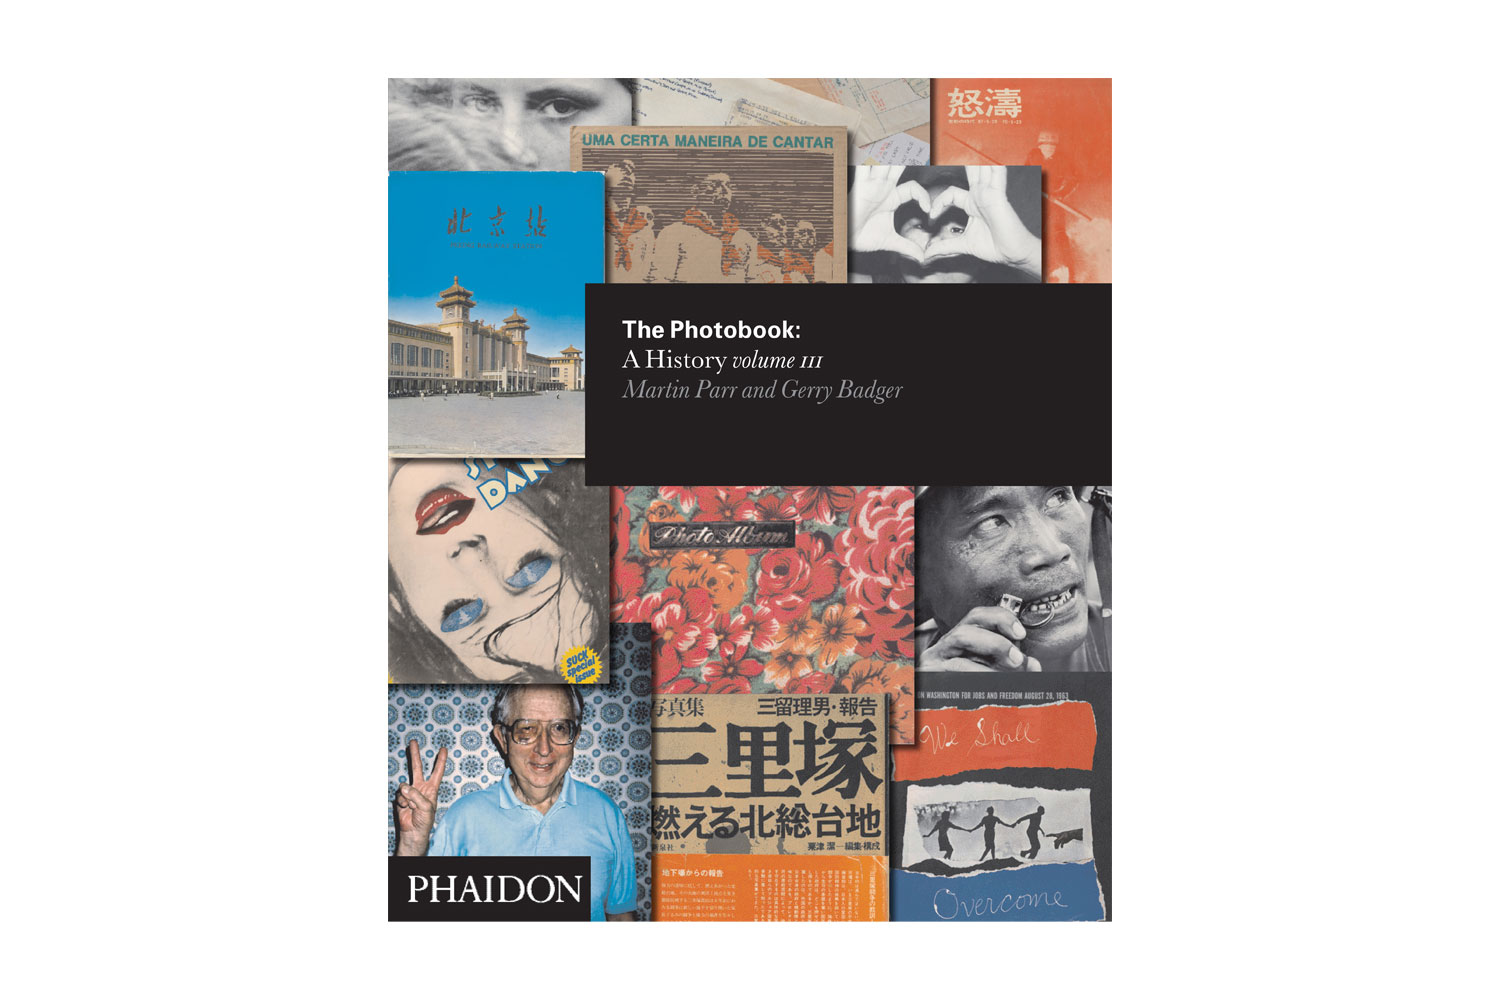 The Photobook: A History by Marti Parr and Gerry Badger, published by Phaidon The third and final volume of Phaidon's definitive history of photography delves into the murky but intensely contested waters of contemporary photography, providing an in depth study of the massive technical and conceptual leaps made in the field since Volume I was published in 2004.